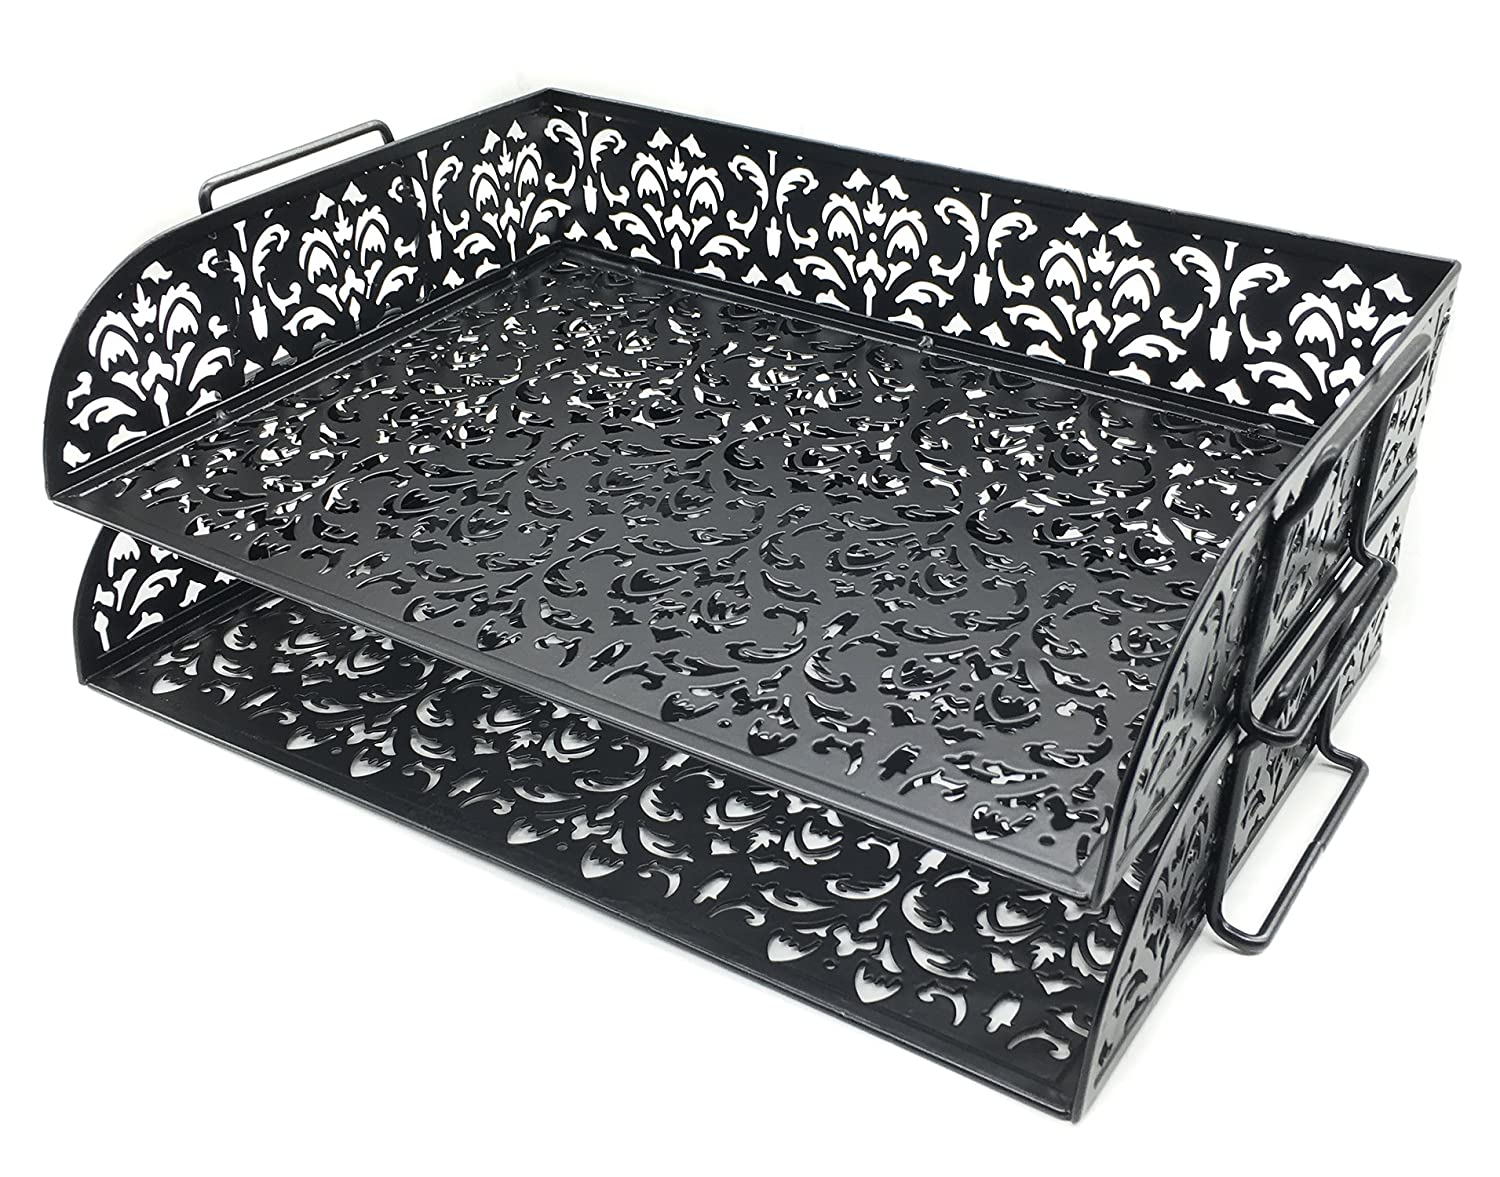 EasyPAG Carved Hollow Flower Pattern 2 Tier Desk Letter Tray,White 20151217001